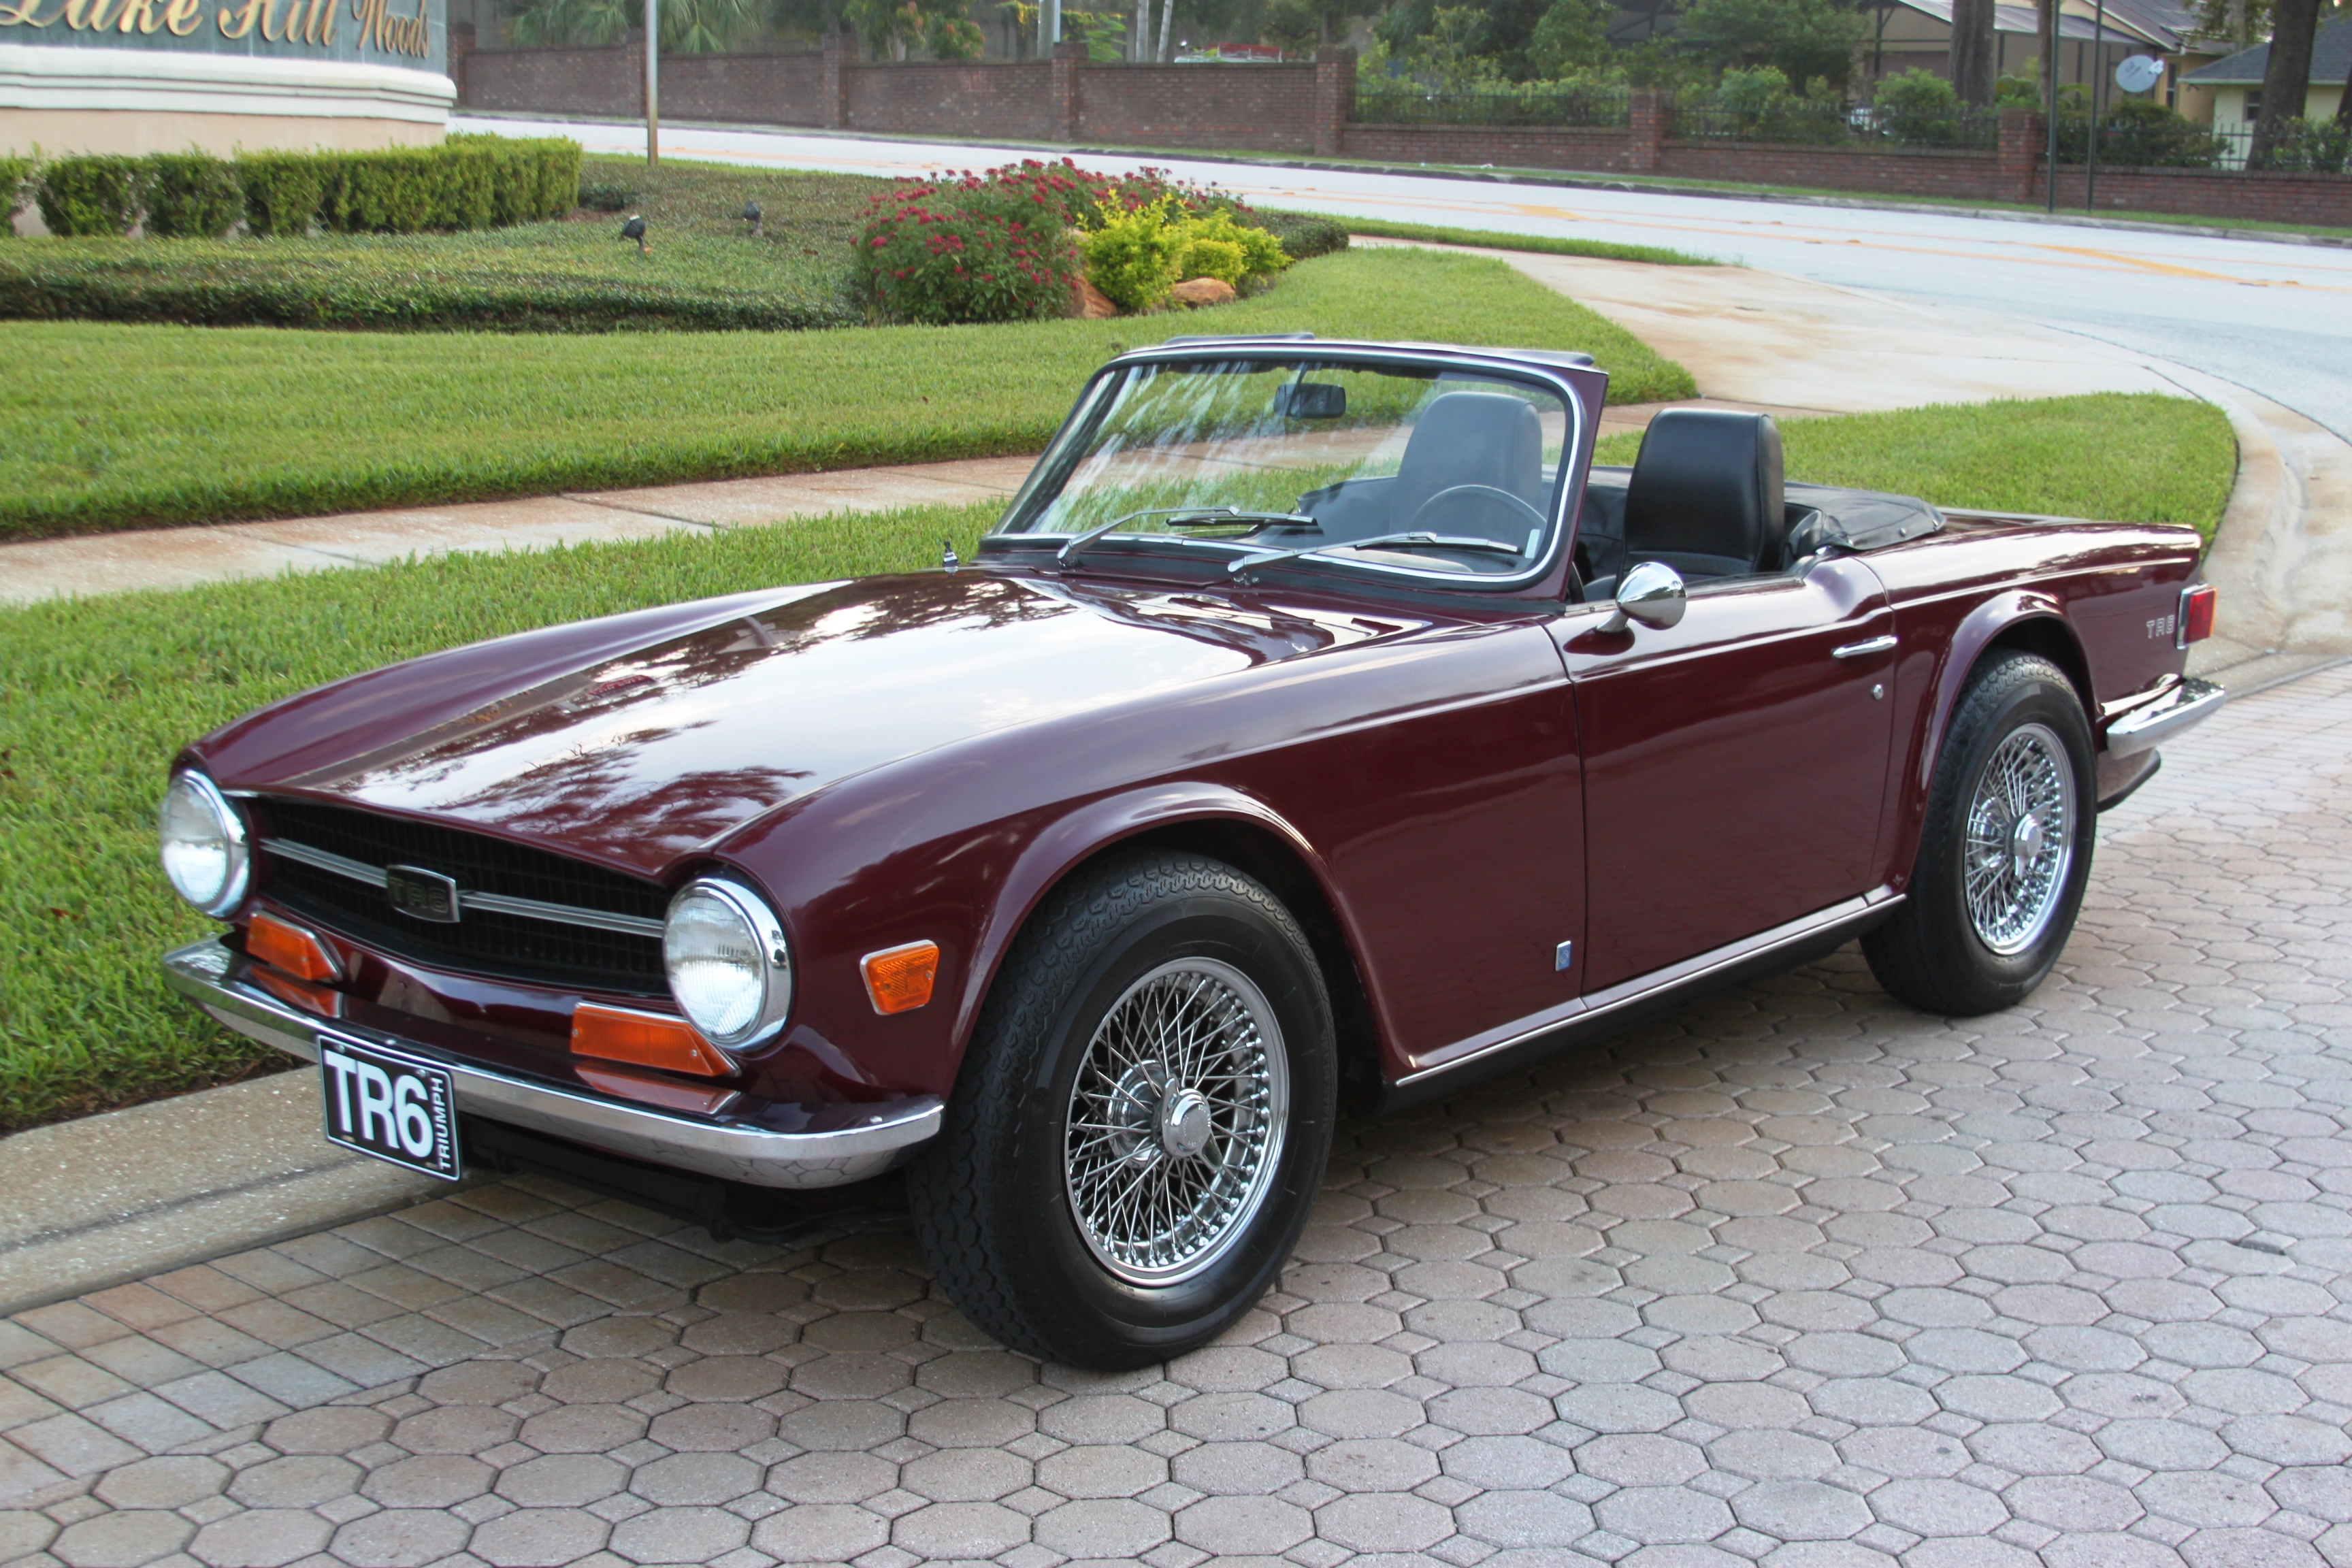 1969 Triumph Tr6 First Year For The Tr6 Sold Vantage